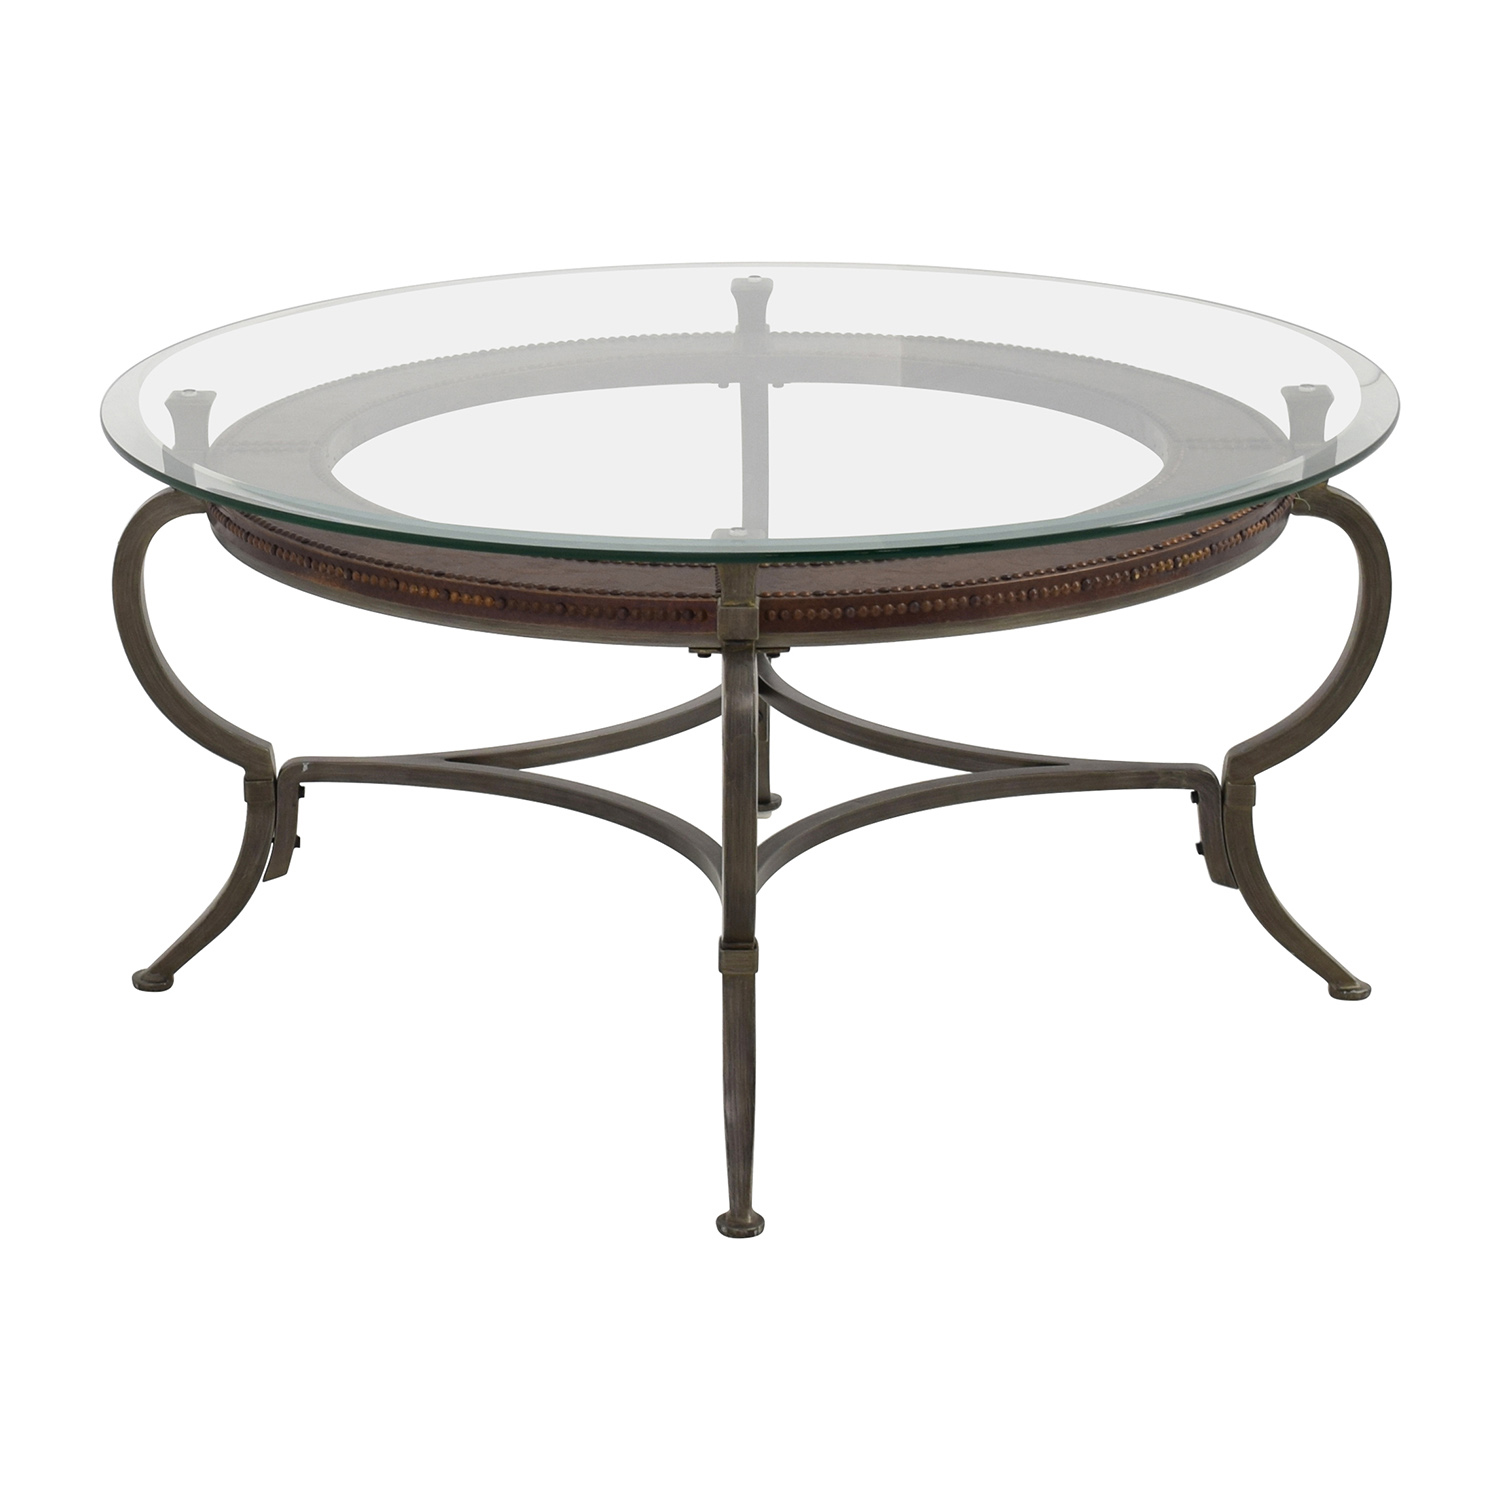 86 off macy 39 s macy 39 s round metal and glass cocktail table tables Metal and glass coffee table